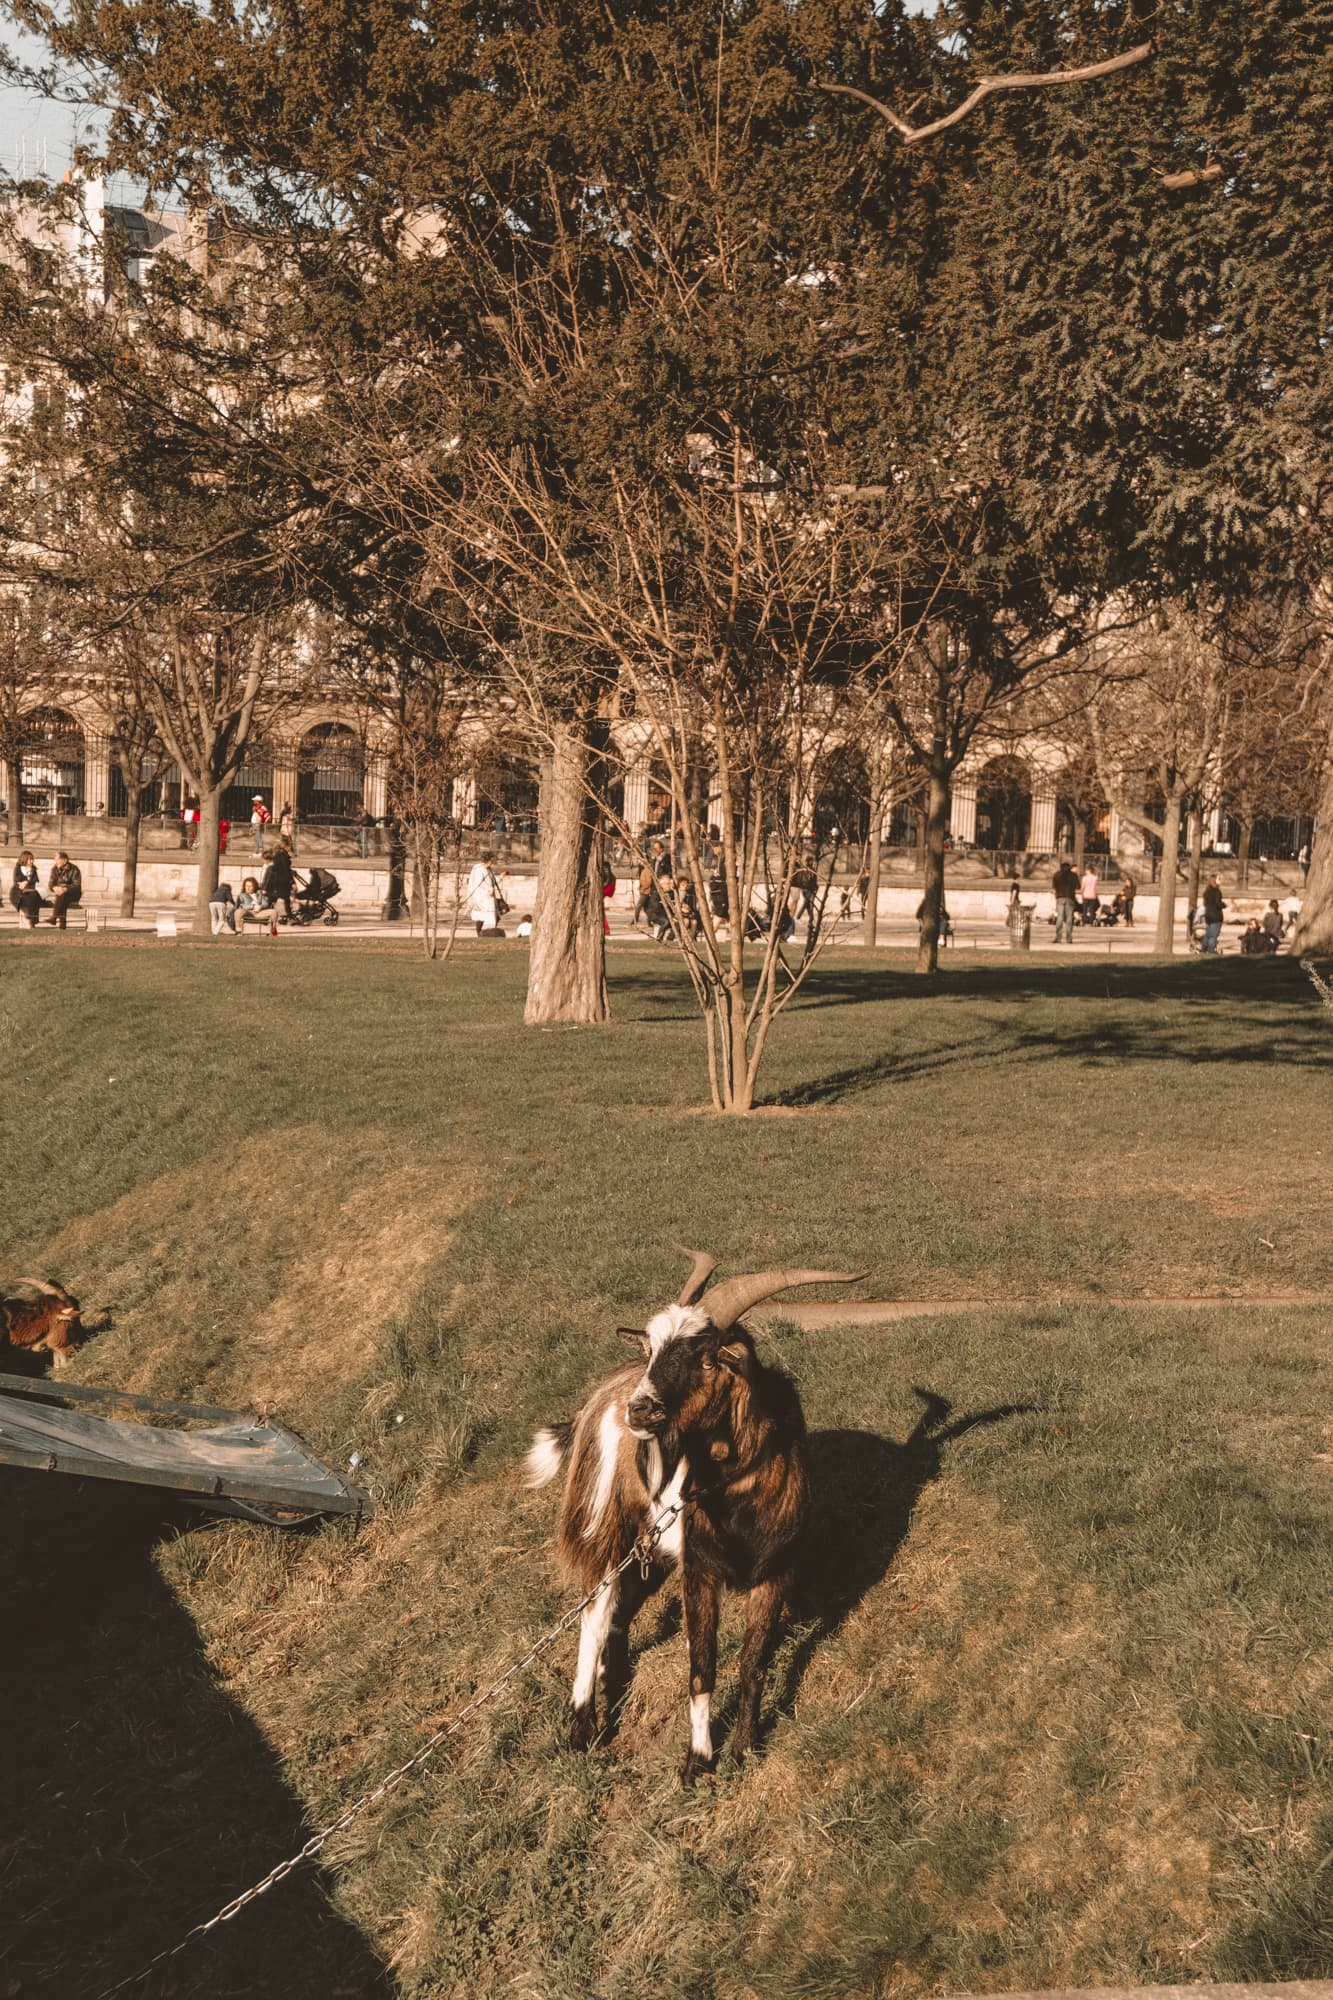 pet goat at Tuileries gardens, Paris